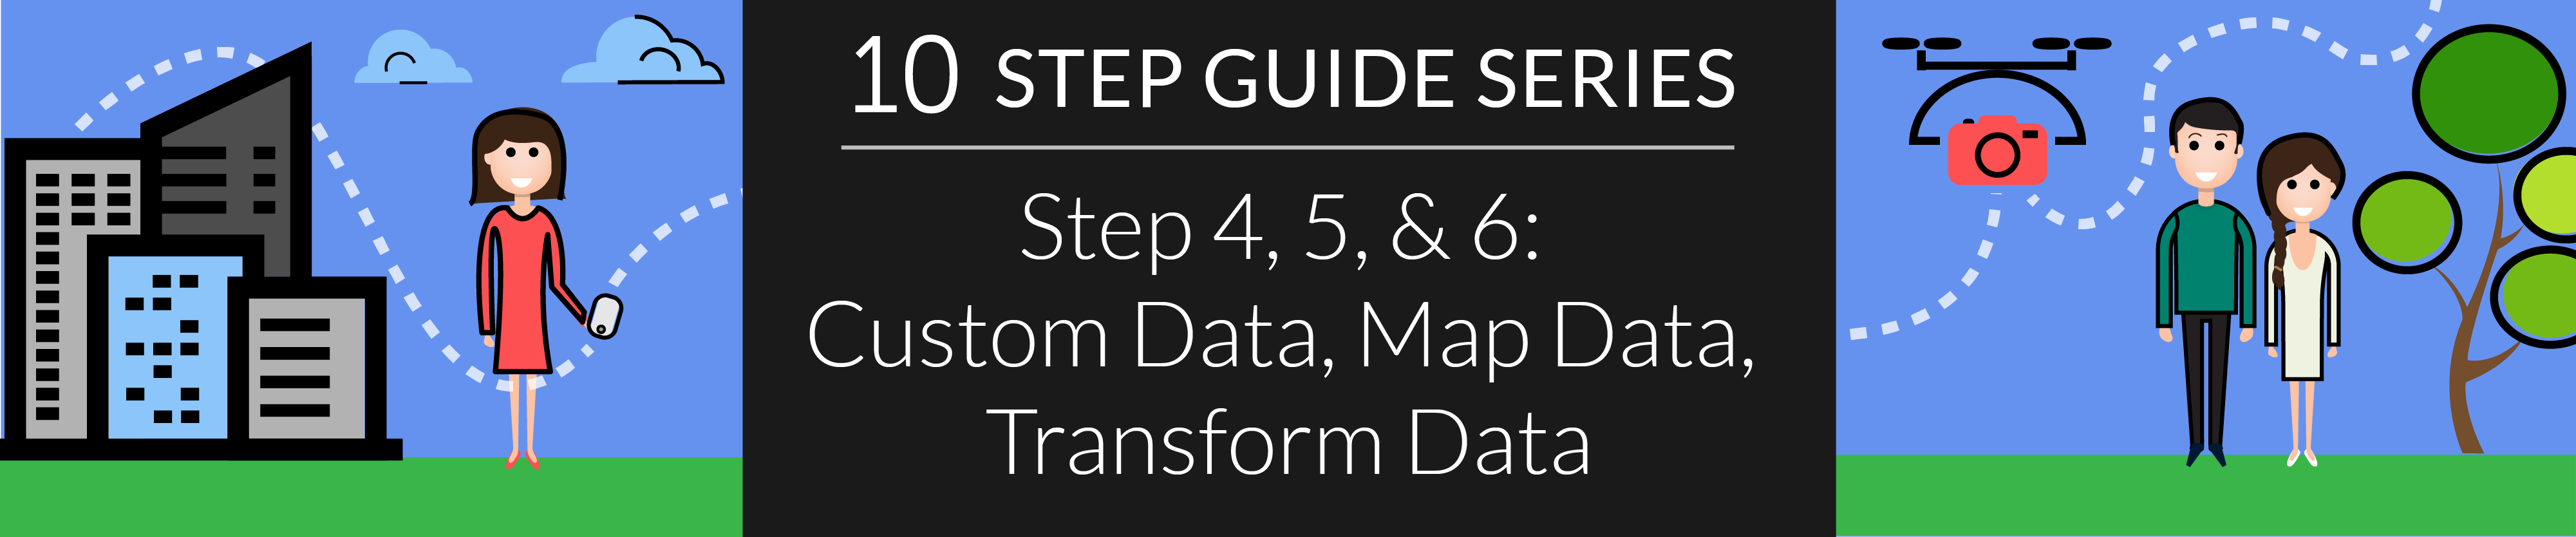 NEW 10 Step Guide Series Blog Banners-05